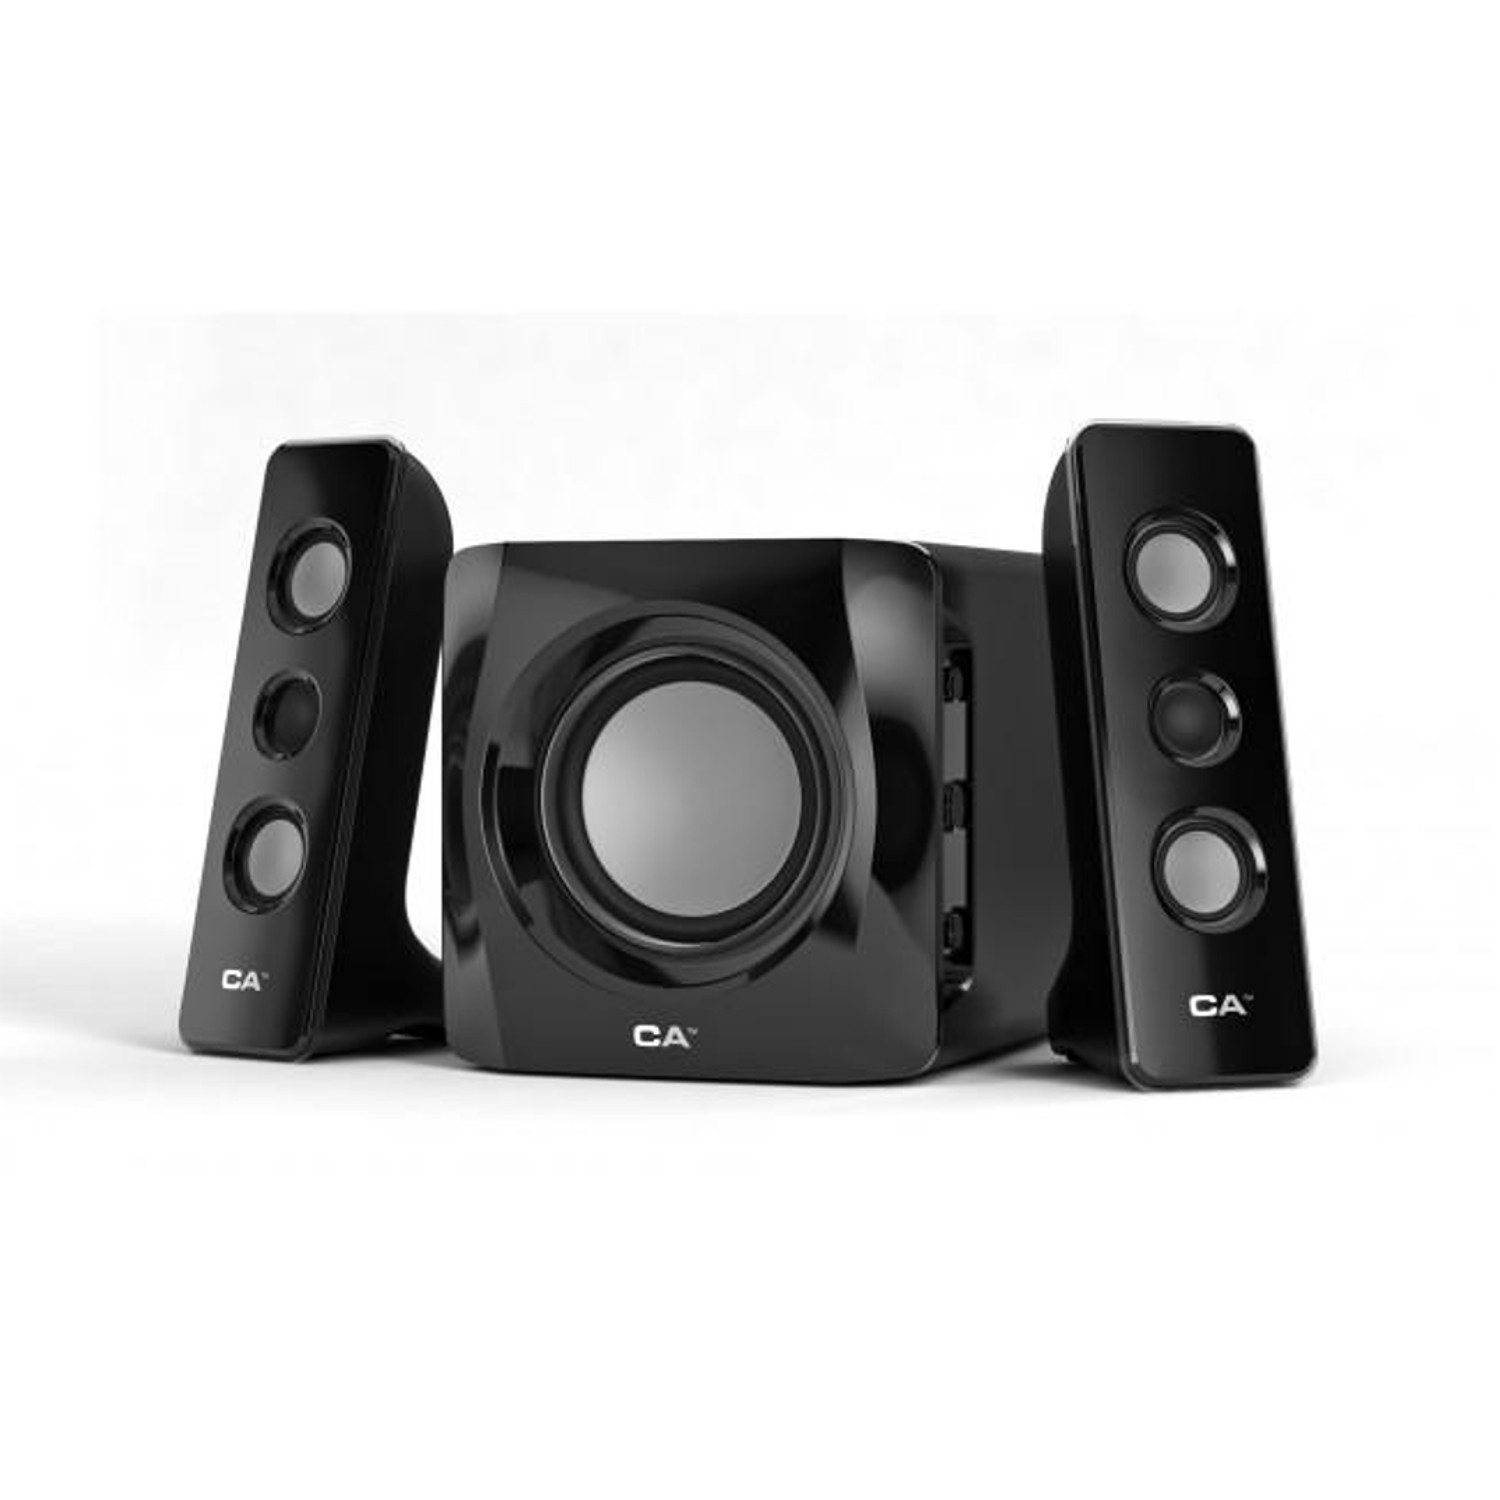 bluetooth lautsprecher 30w subwoofer sound system hifi set design neu ebay. Black Bedroom Furniture Sets. Home Design Ideas